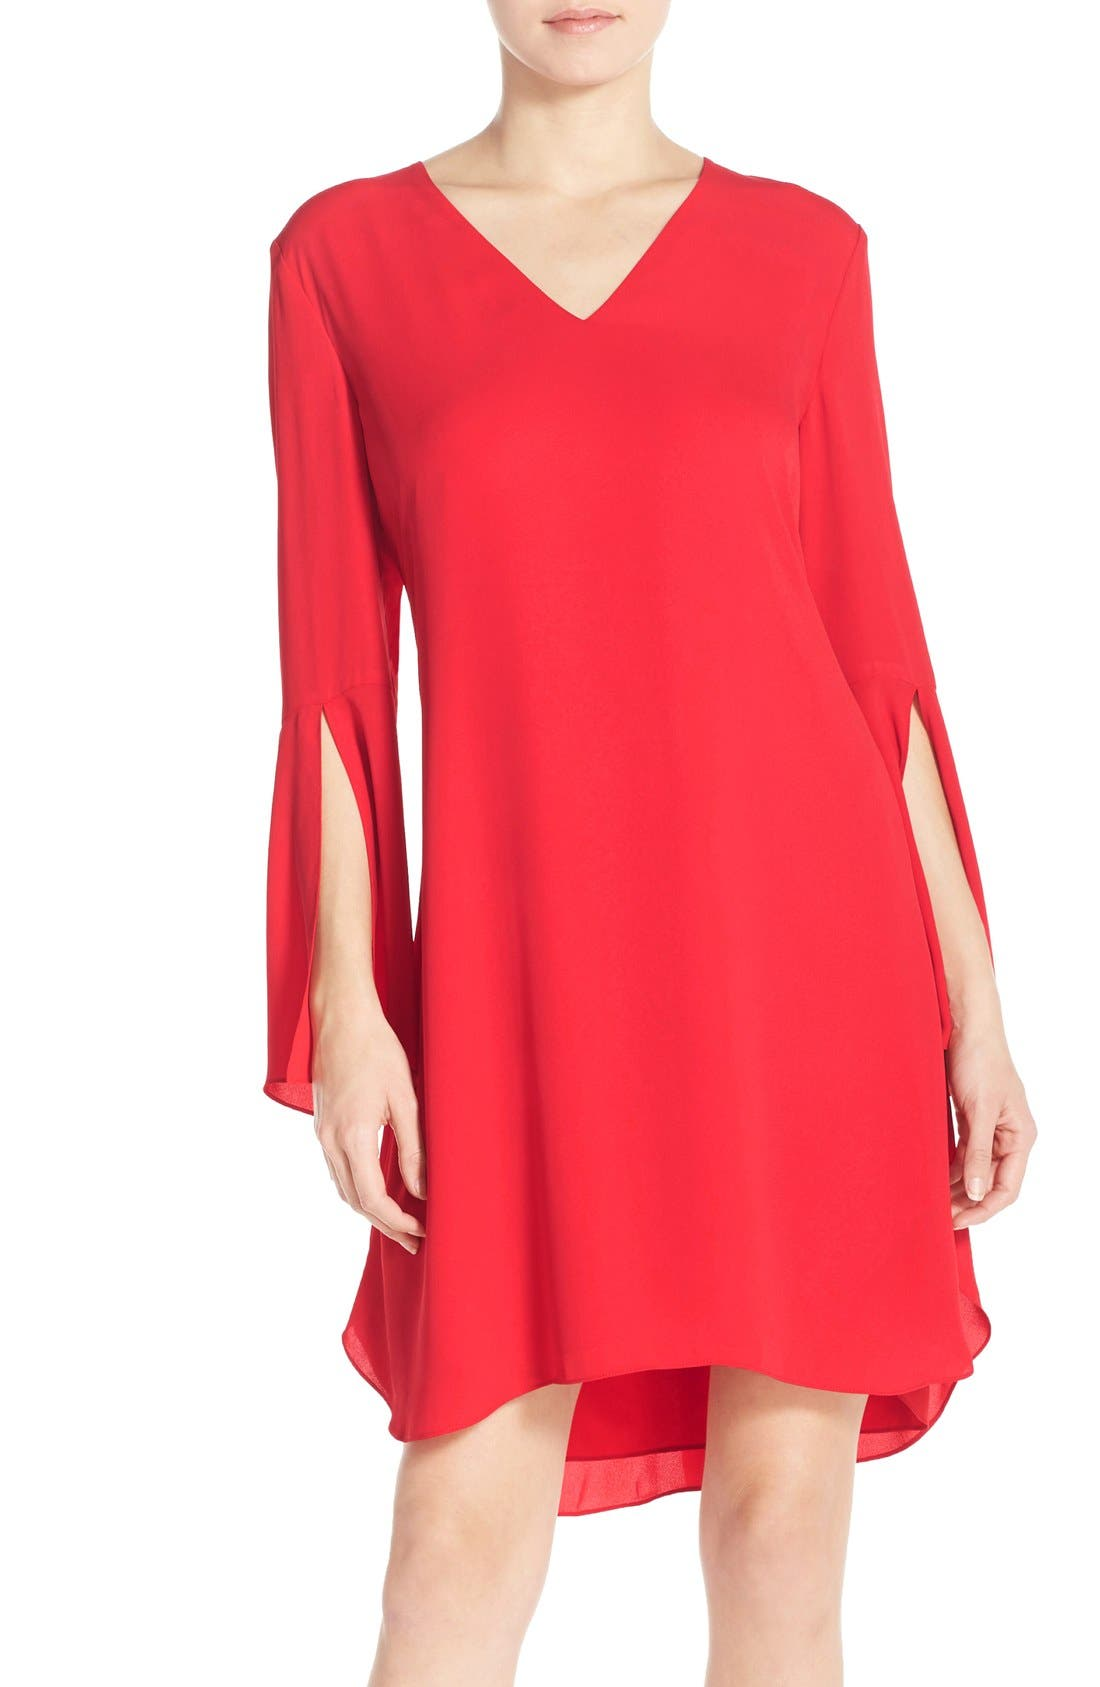 Alternate Image 1 Selected - Chelsea28 Bell Sleeve Chiffon A-Line Dress